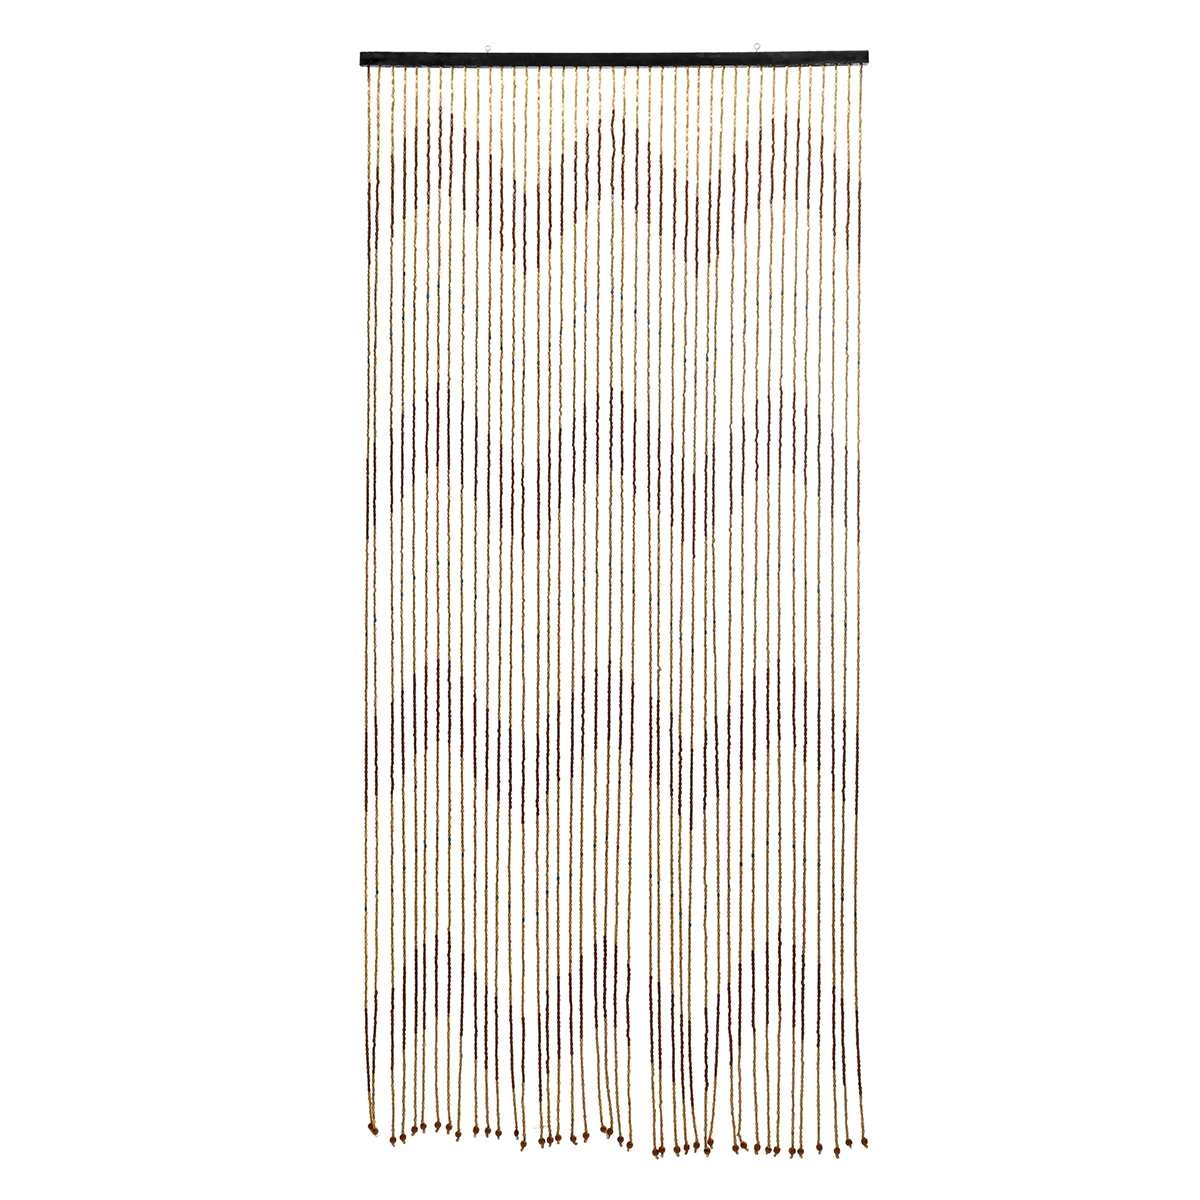 High Quality Wooden Door Curtain Blinds Handmade Fly Screen Wooden Beads Room Divider 31 Line Non-toxic No Smell 90x220cm